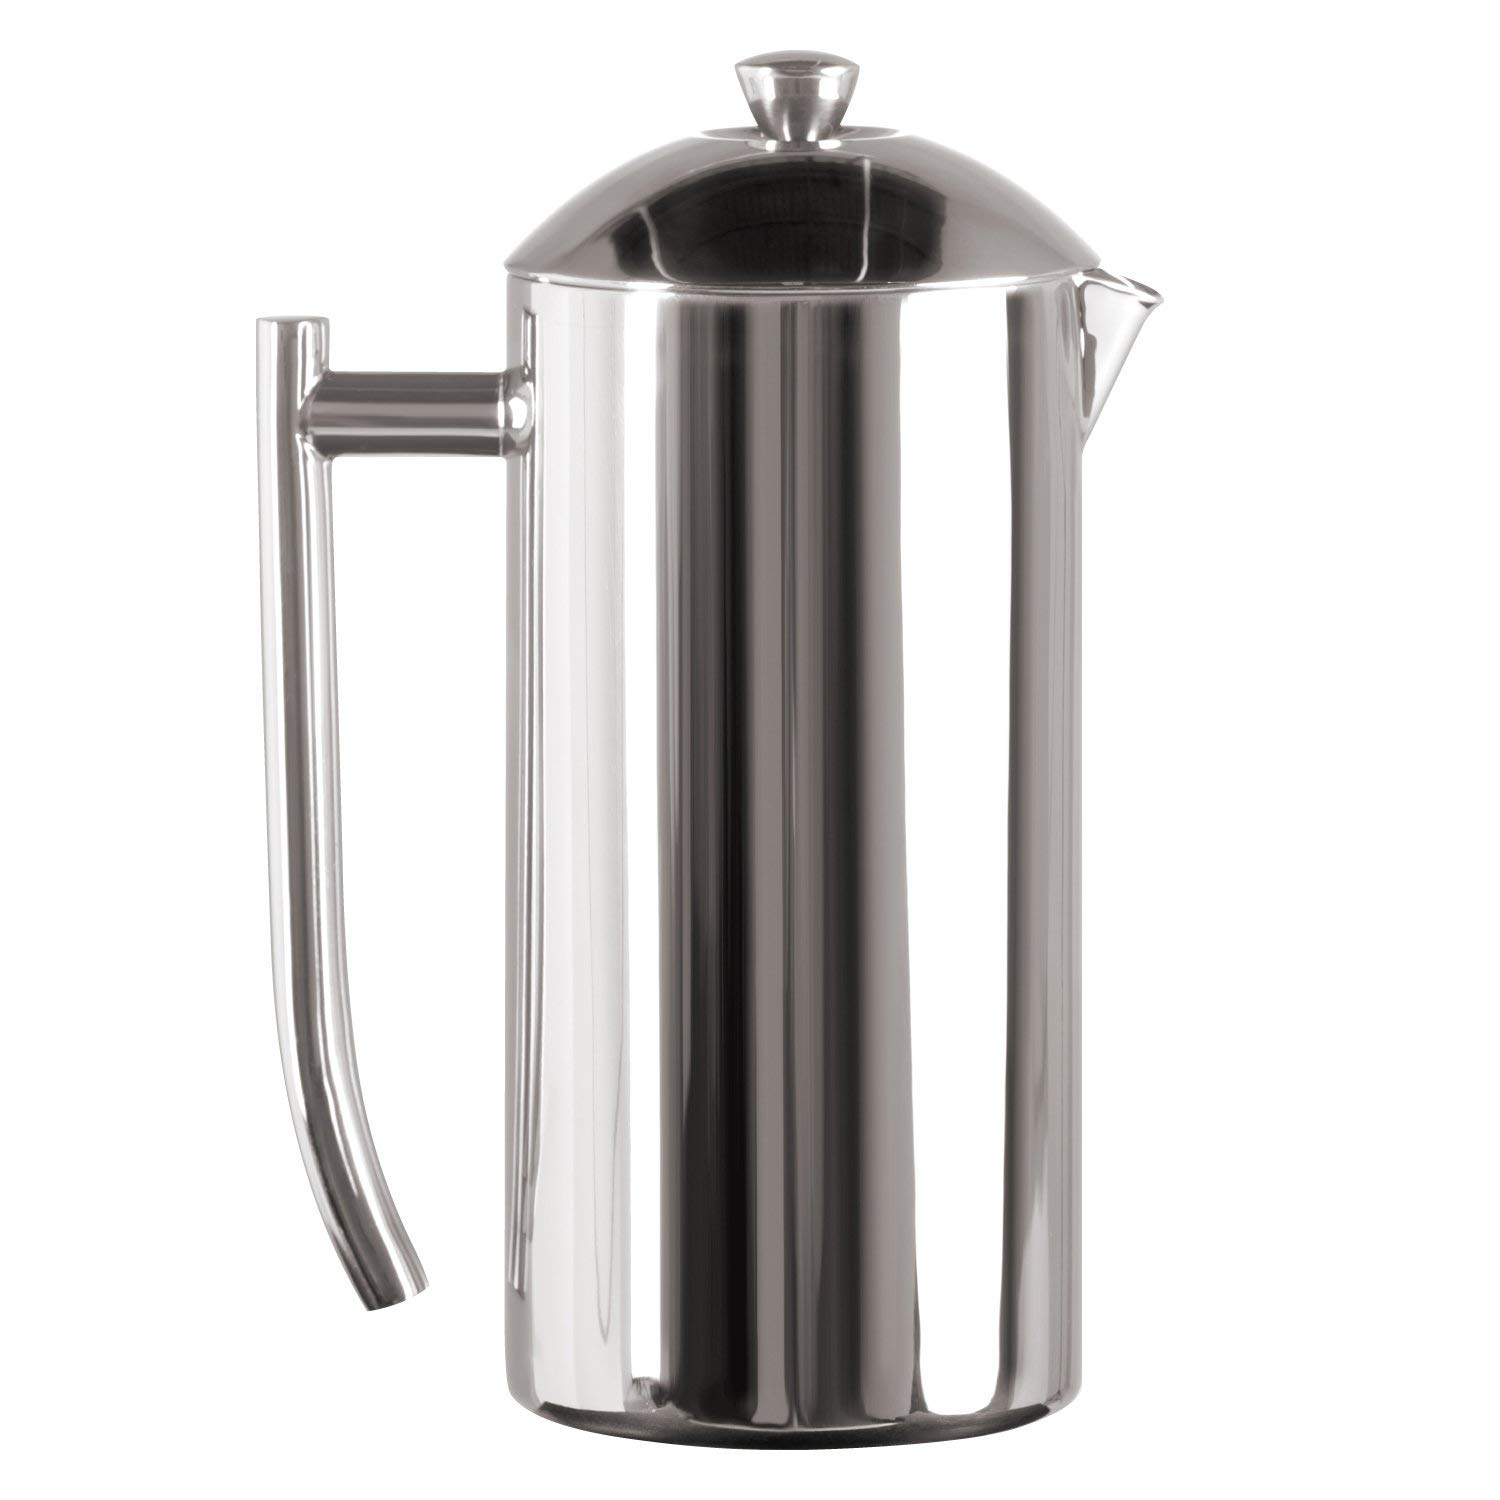 Best French press: Frieling